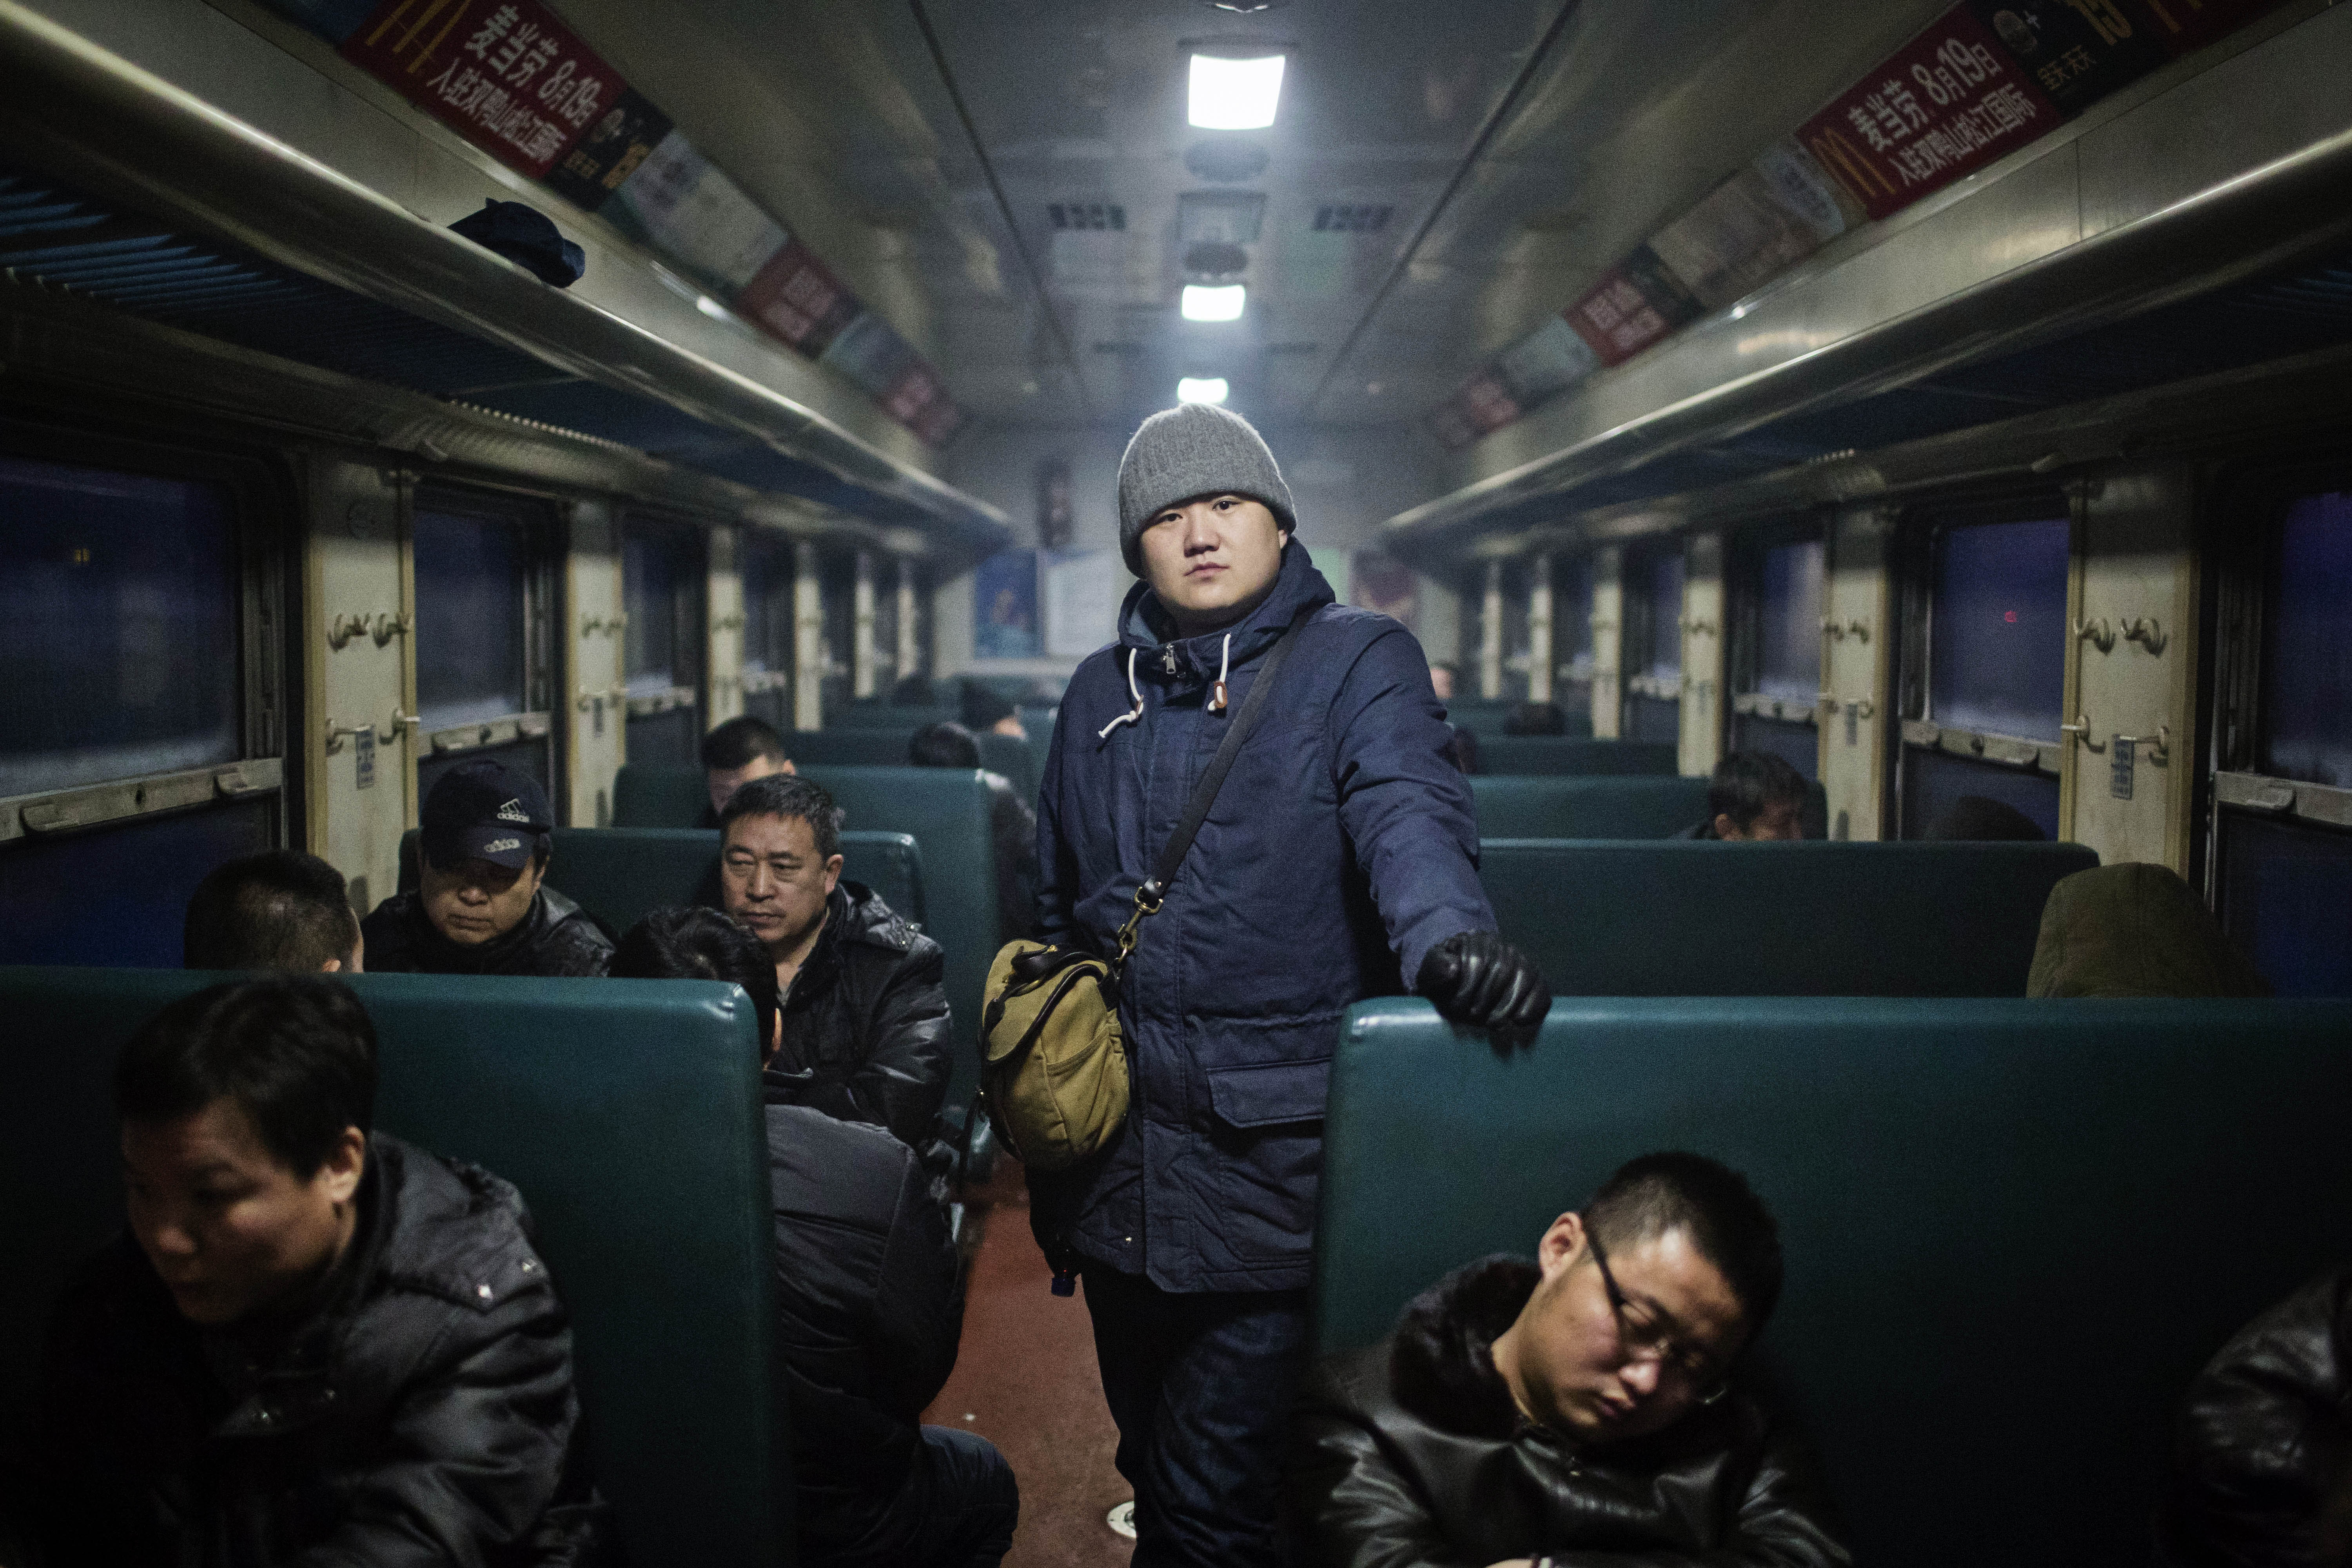 Zhang Tianqi stands in the aisle of a commuter train that takes miners to and from the mining area, Jan. 21, 2016. In today's mining communities, faces as young as Zhang's are few and far between. Zhou Pinglang/Sixth Tone